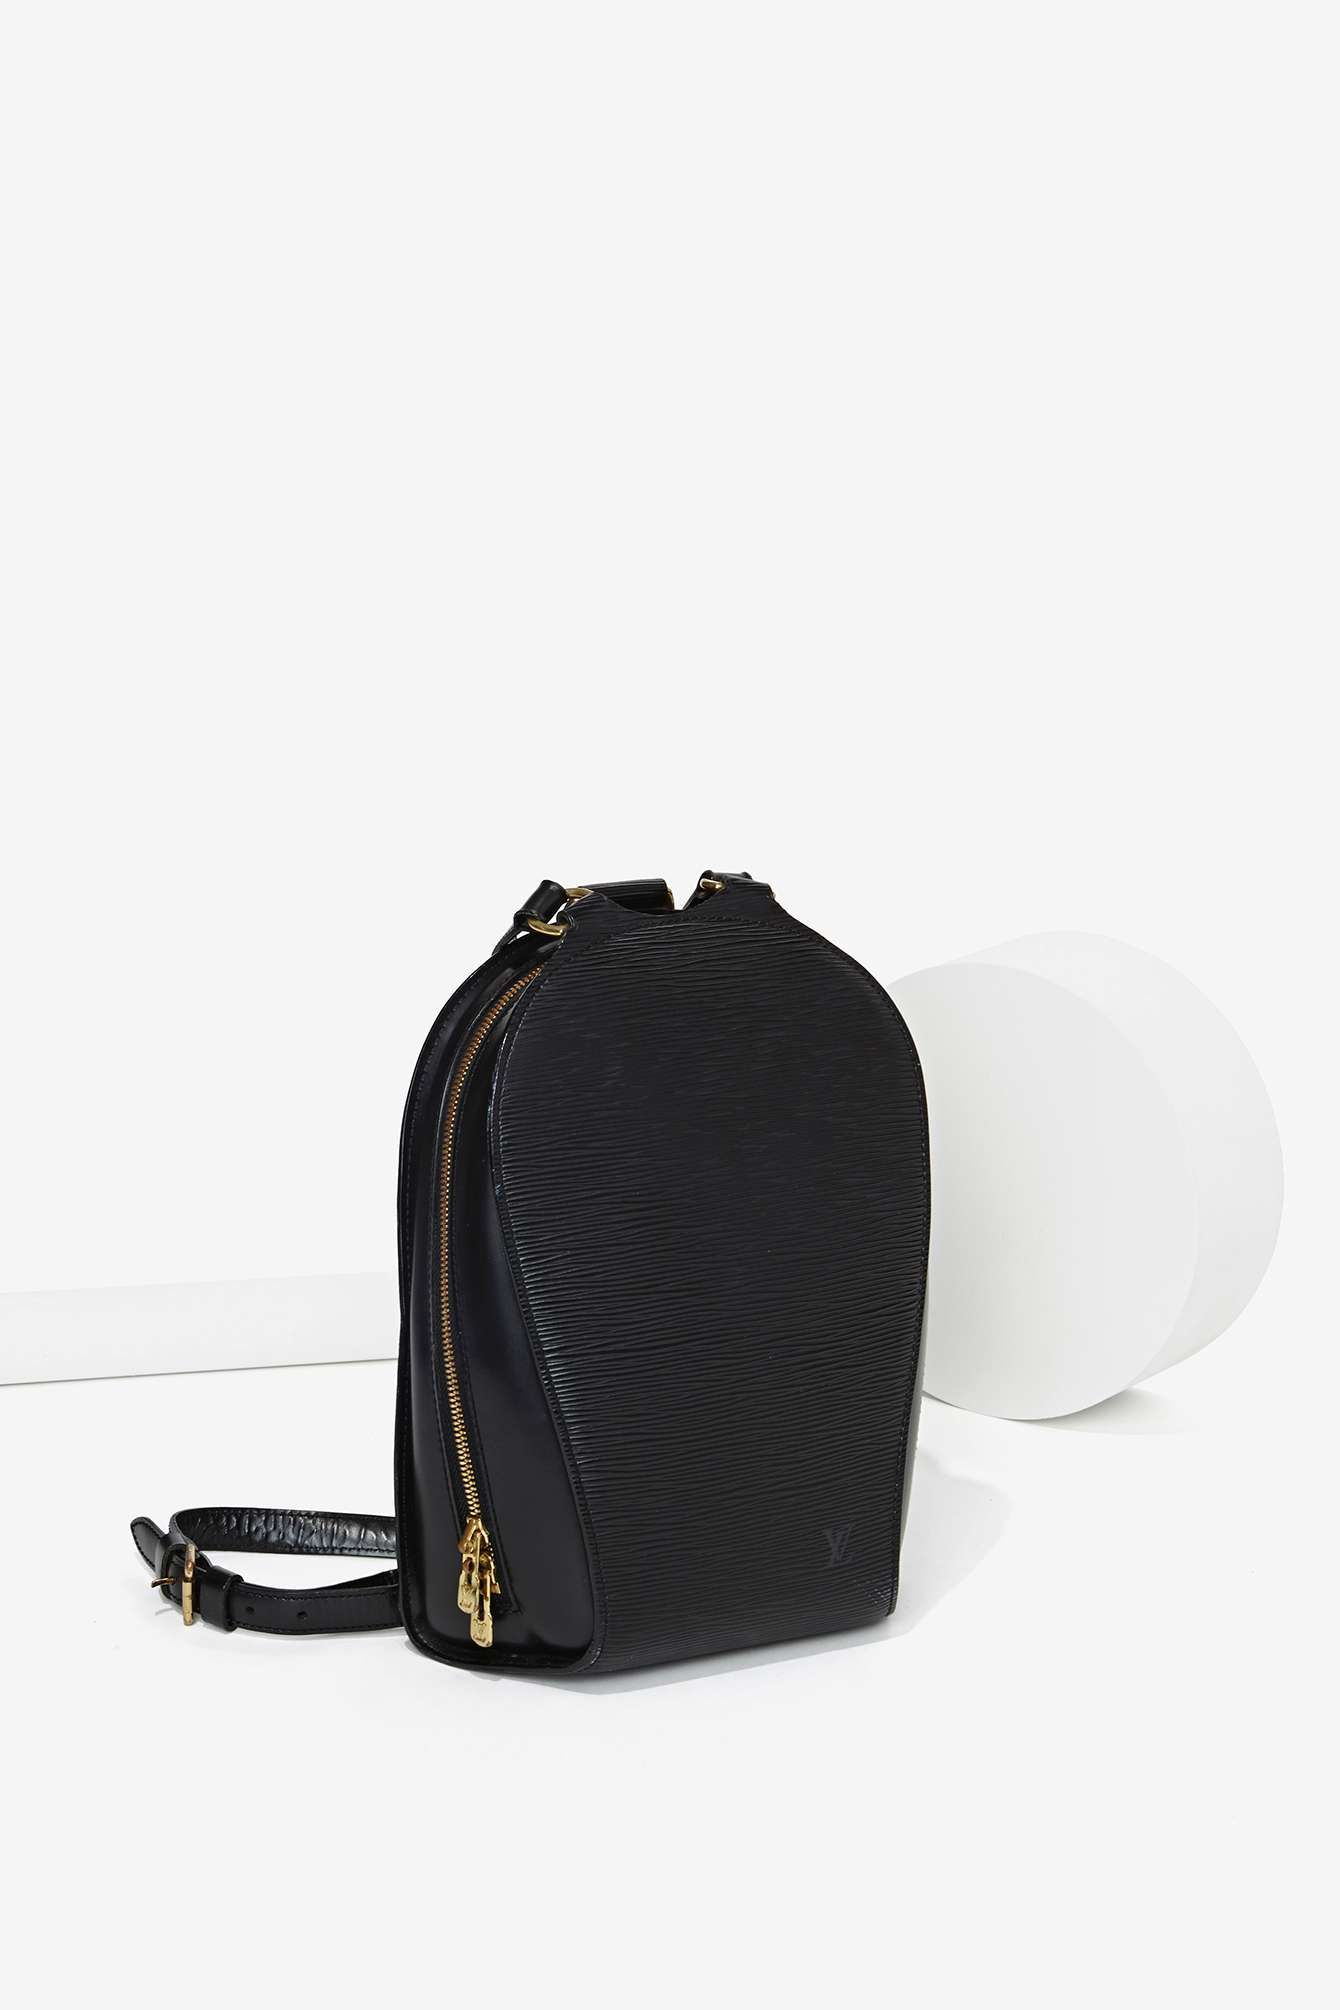 fa4868dd2106 Vintage Louis Vuitton Epi Leather Backpack  Dramatic Classic Gamine ...